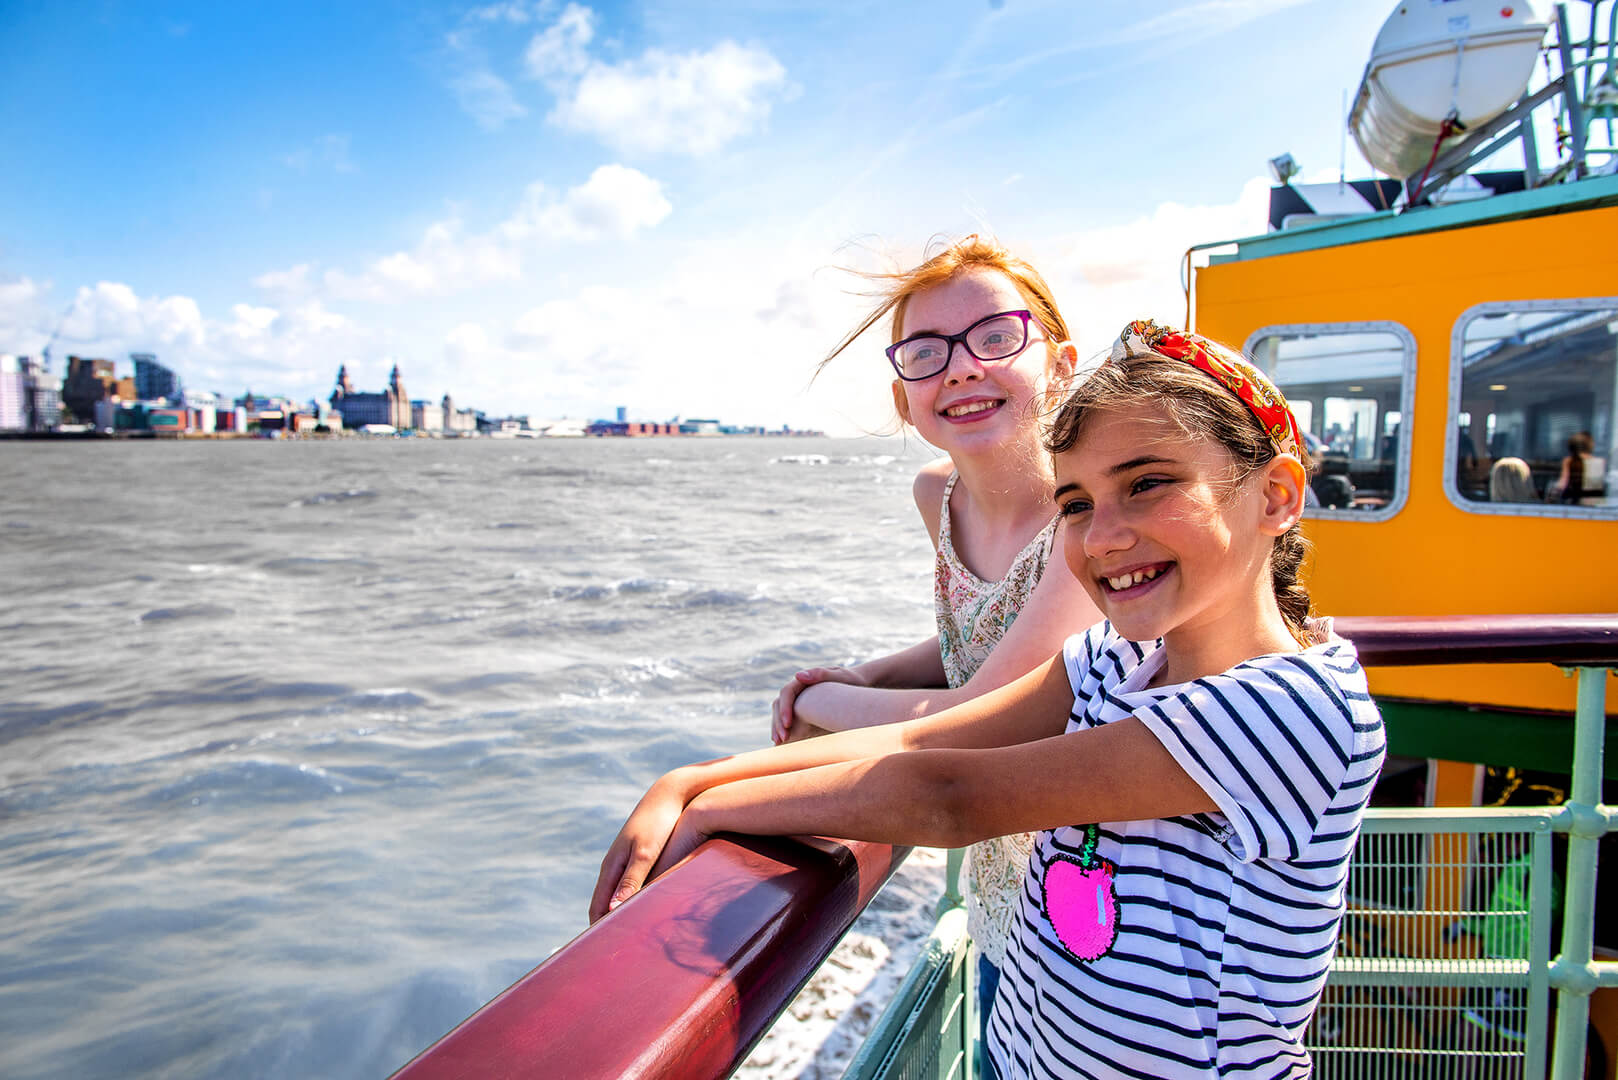 About Mersey Ferries